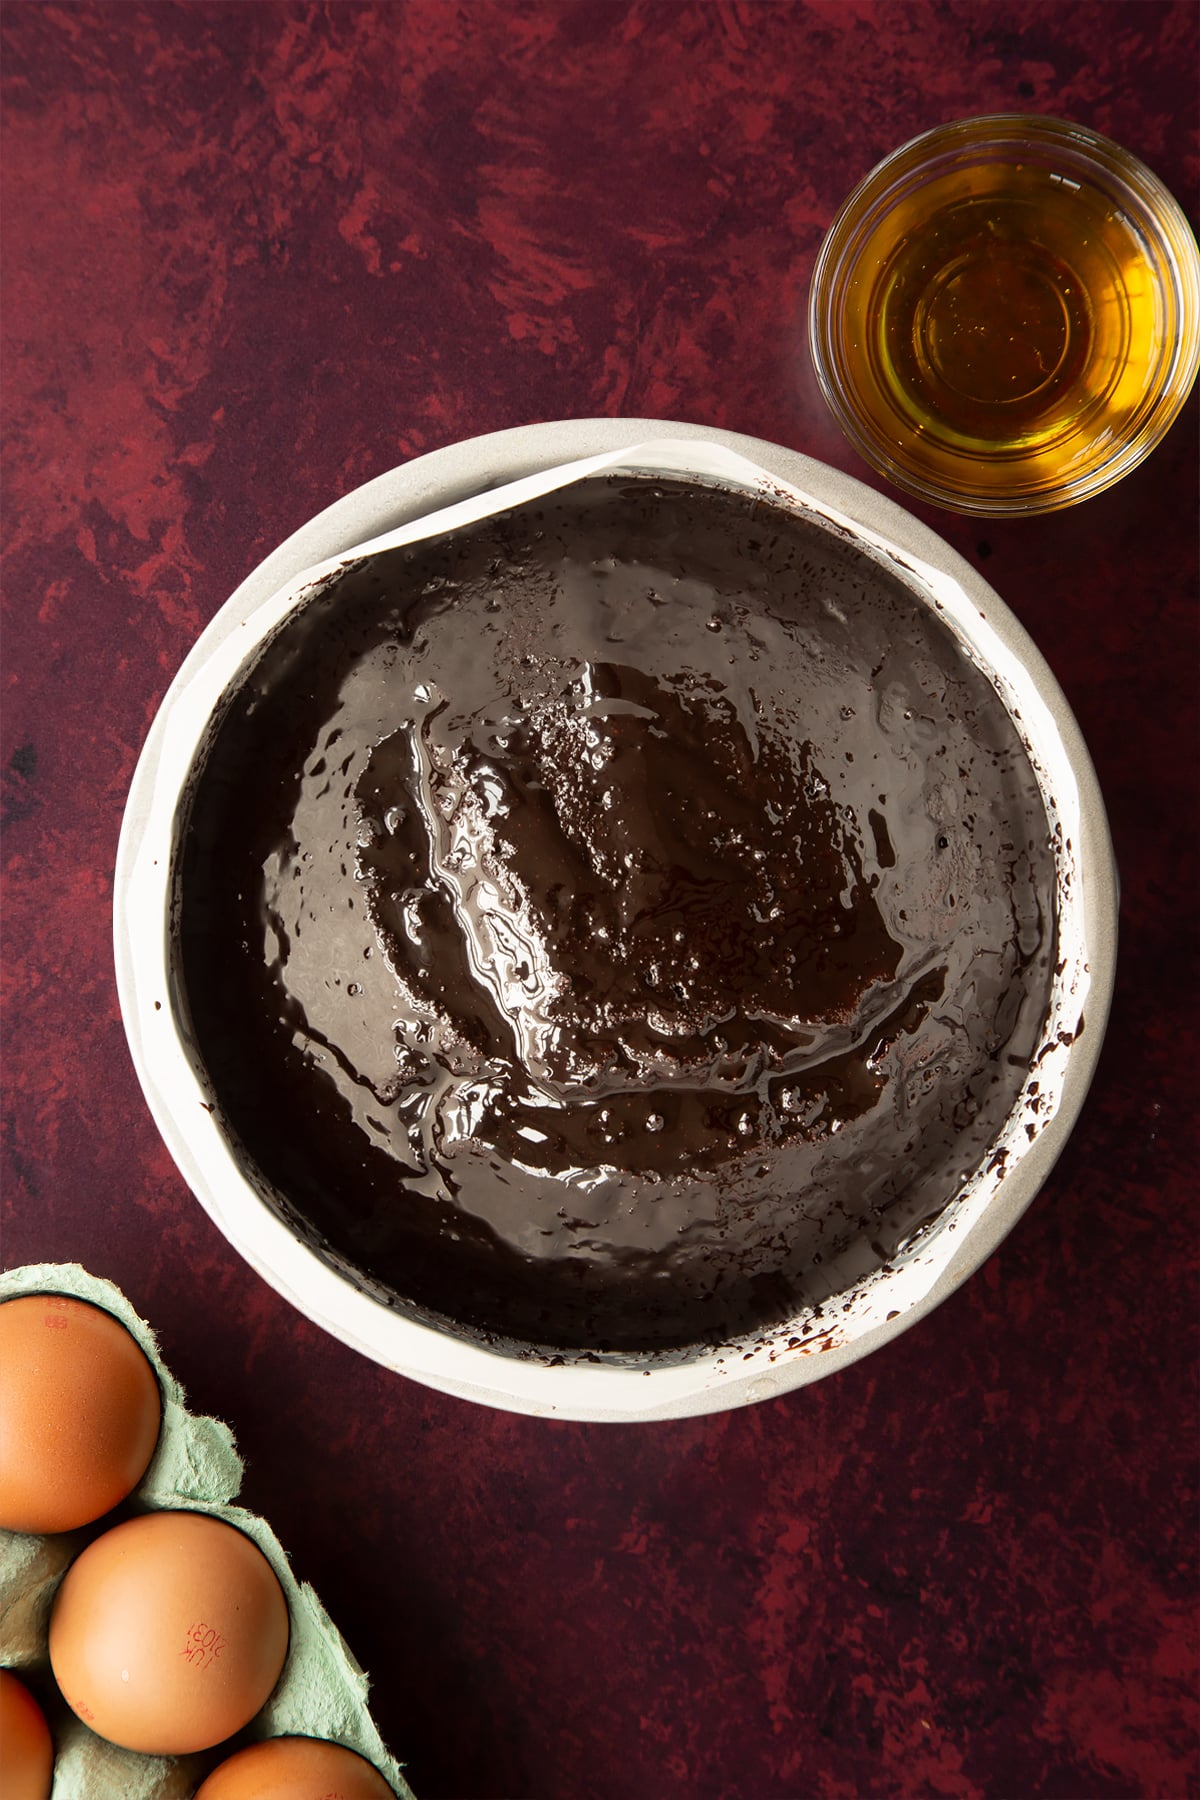 Chocolate drizzle cake, drizzled with syrup in a lined tin.